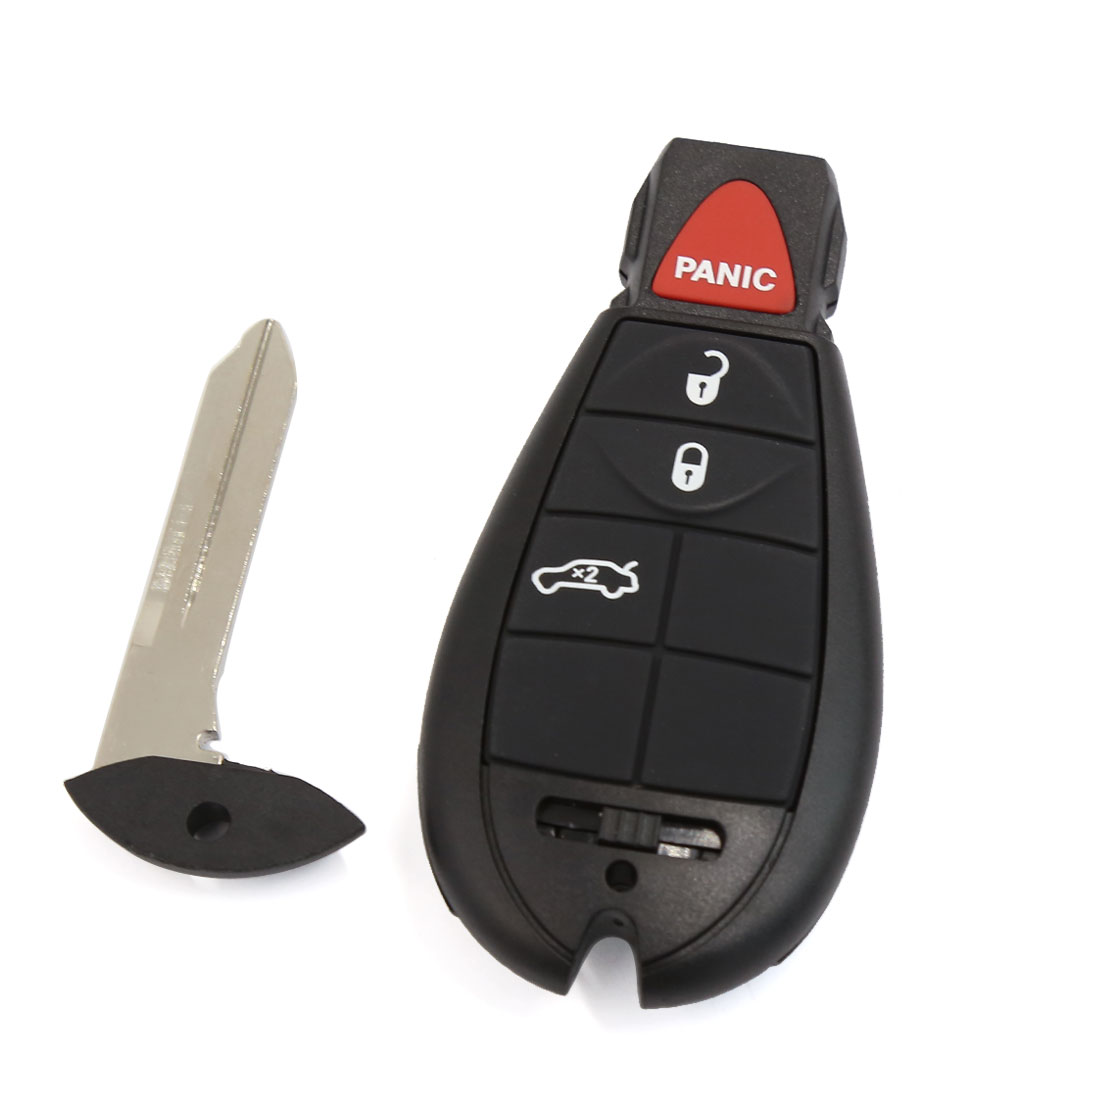 Light New Replacement Keyless Entry Car Remote Key Fob for Dodge M3N5WY783X IYZ-C01C